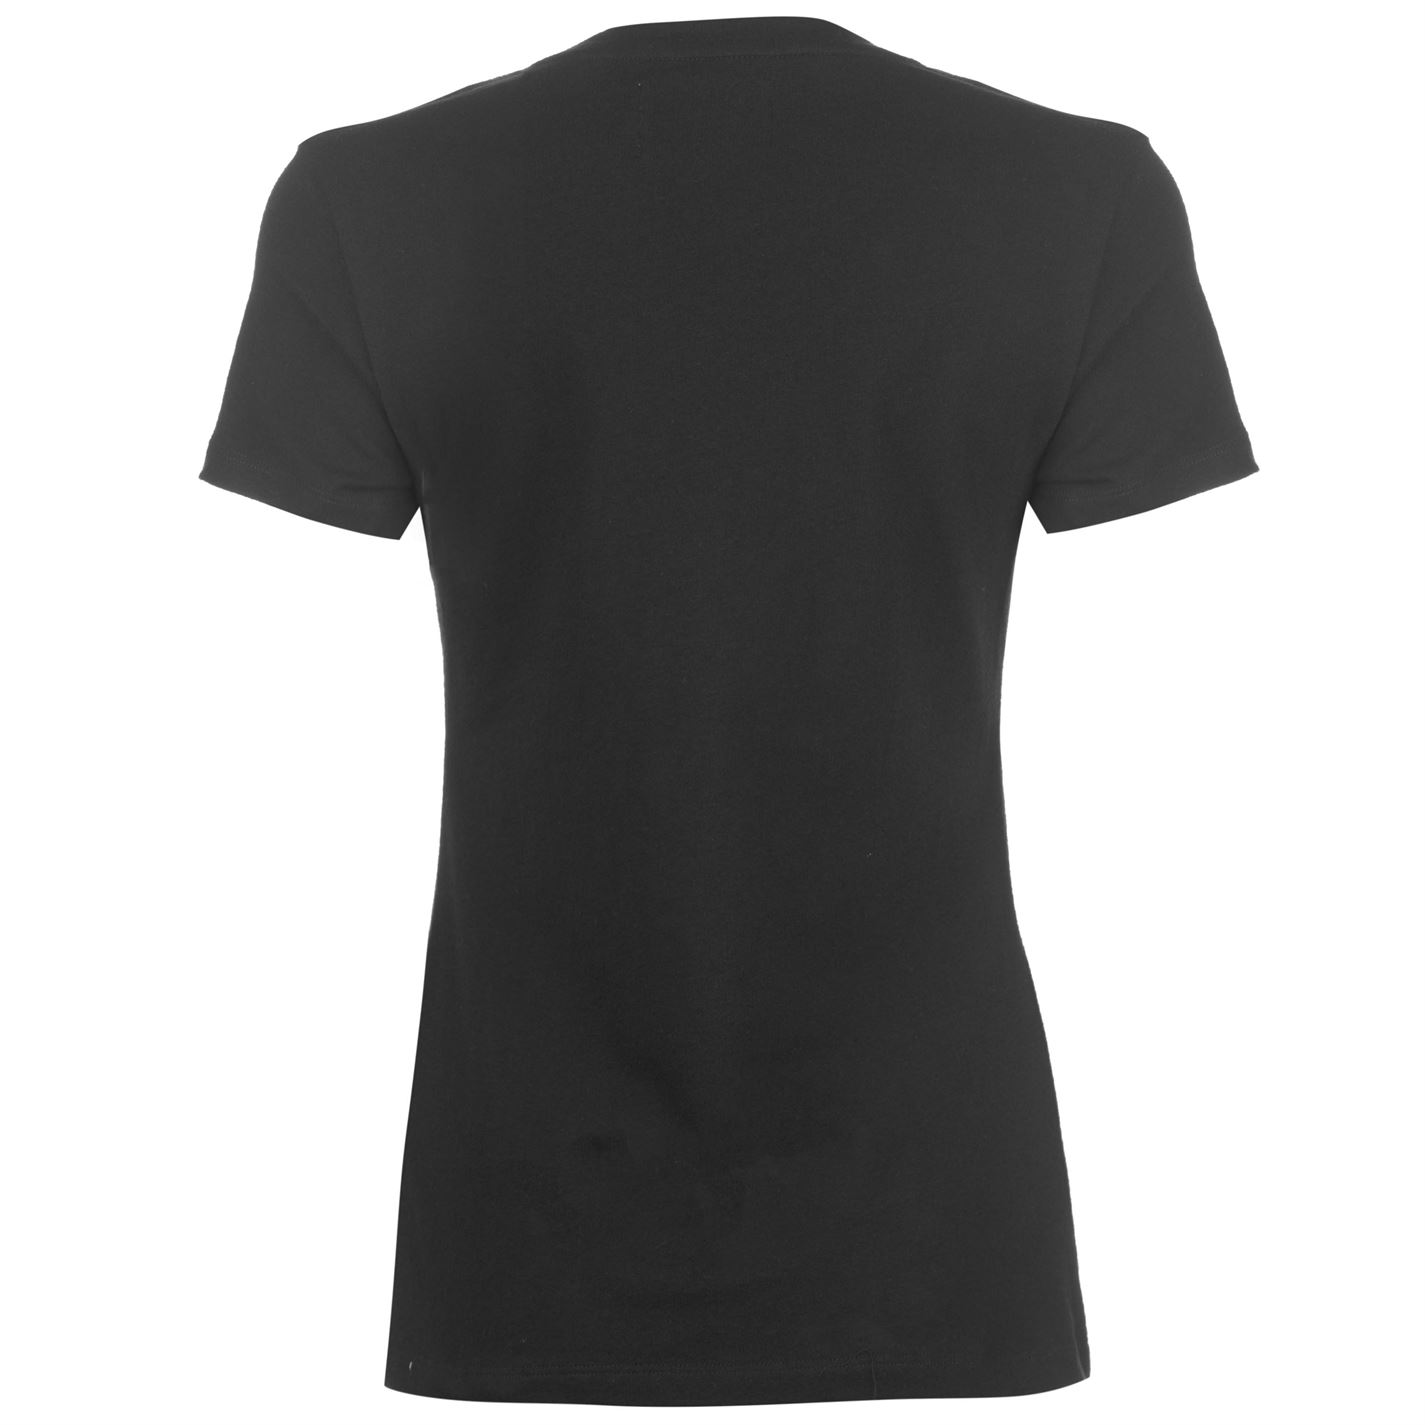 Womens-Calvin-Klein-Core-Slim-T-Shirt-Crew-Neck-Short-Sleeve-New thumbnail 9